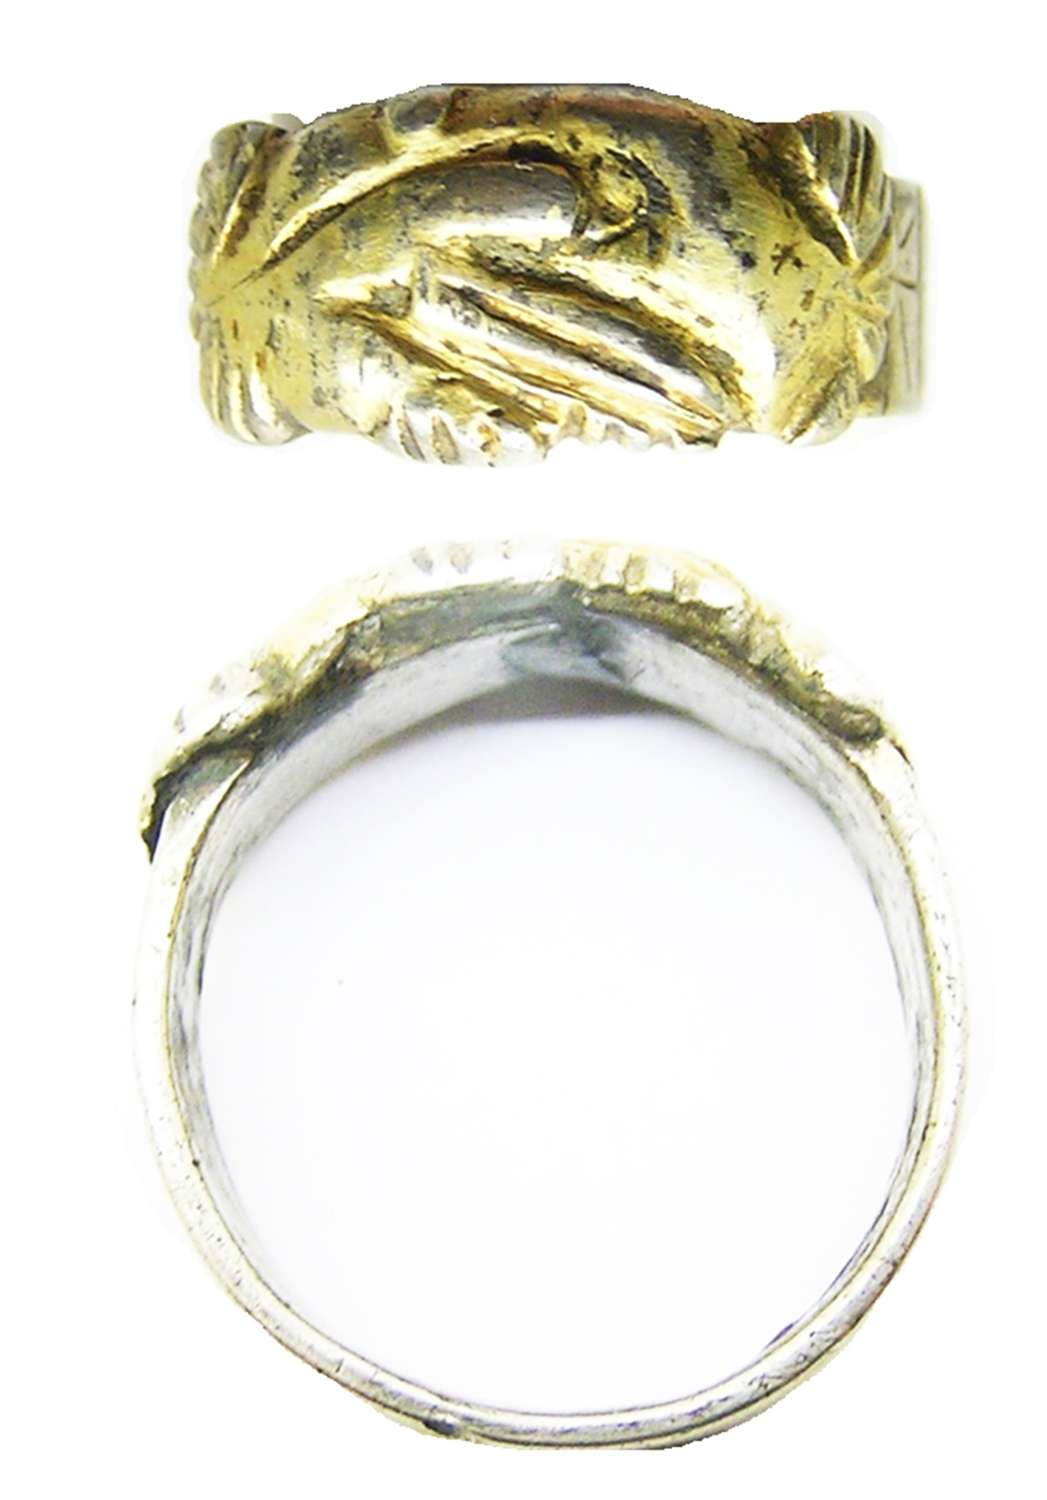 Tudor silver-gilt wedding ring